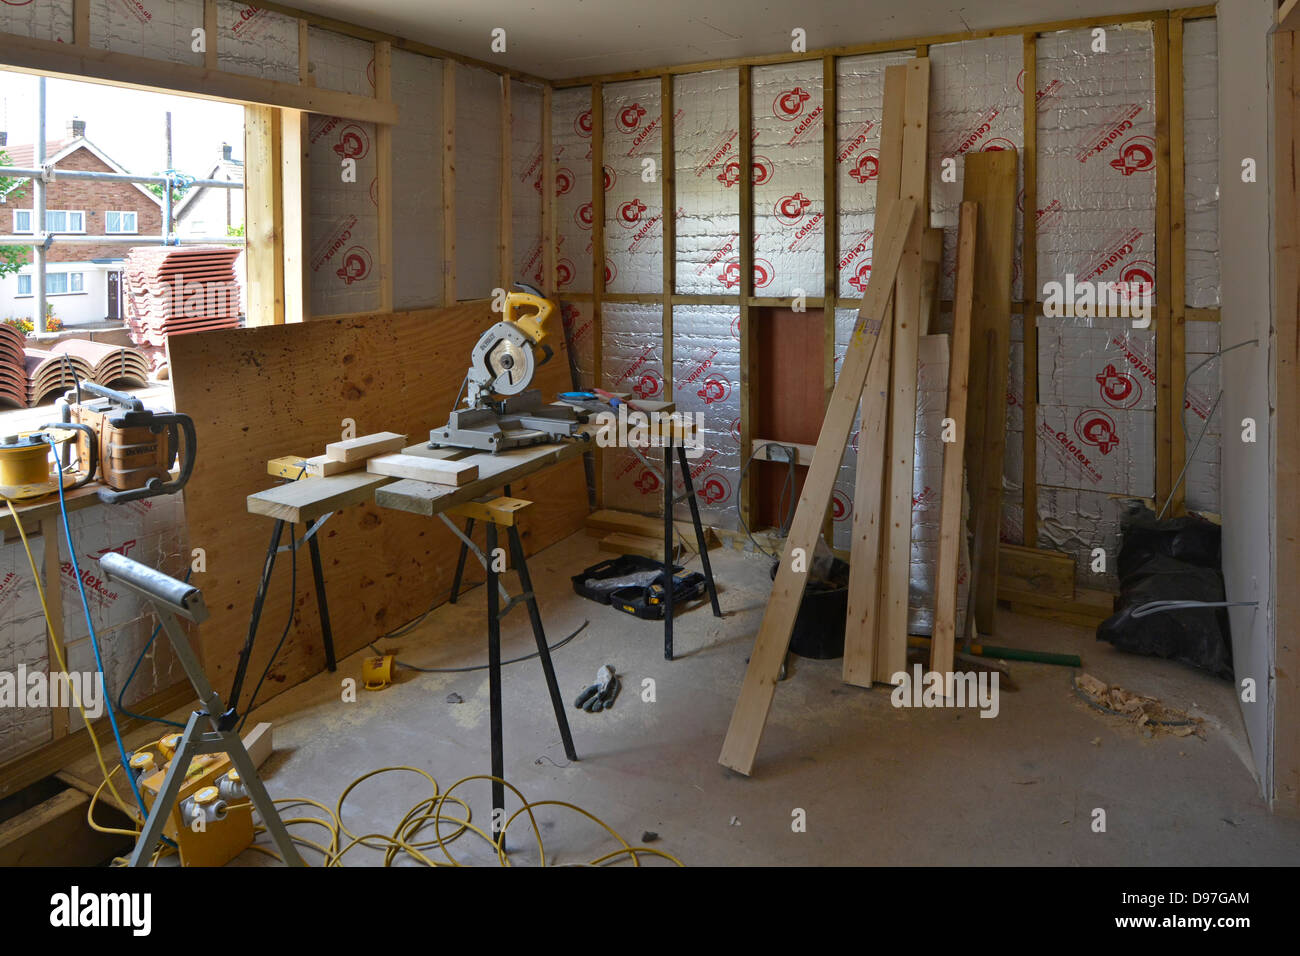 Building construction work in progress to interior of bedroom extension to detached house Essex England UK see 'More - Stock Image